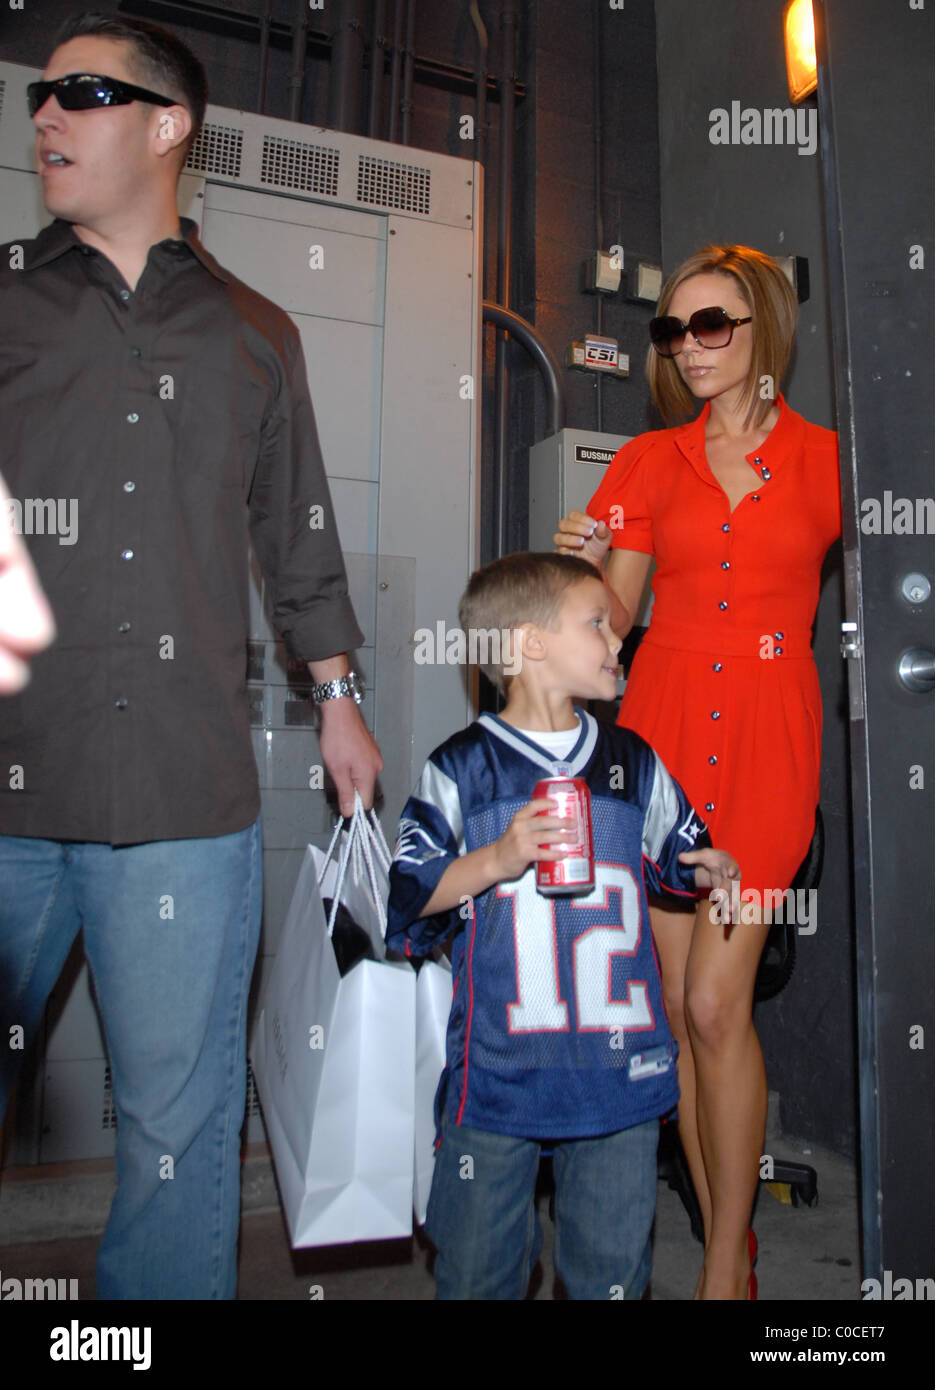 Victoria Beckham goes on a shopping spree in Dolce Gabana with her son Cruz Beckham Los Angeles, California - 21.03.08 - Stock Image